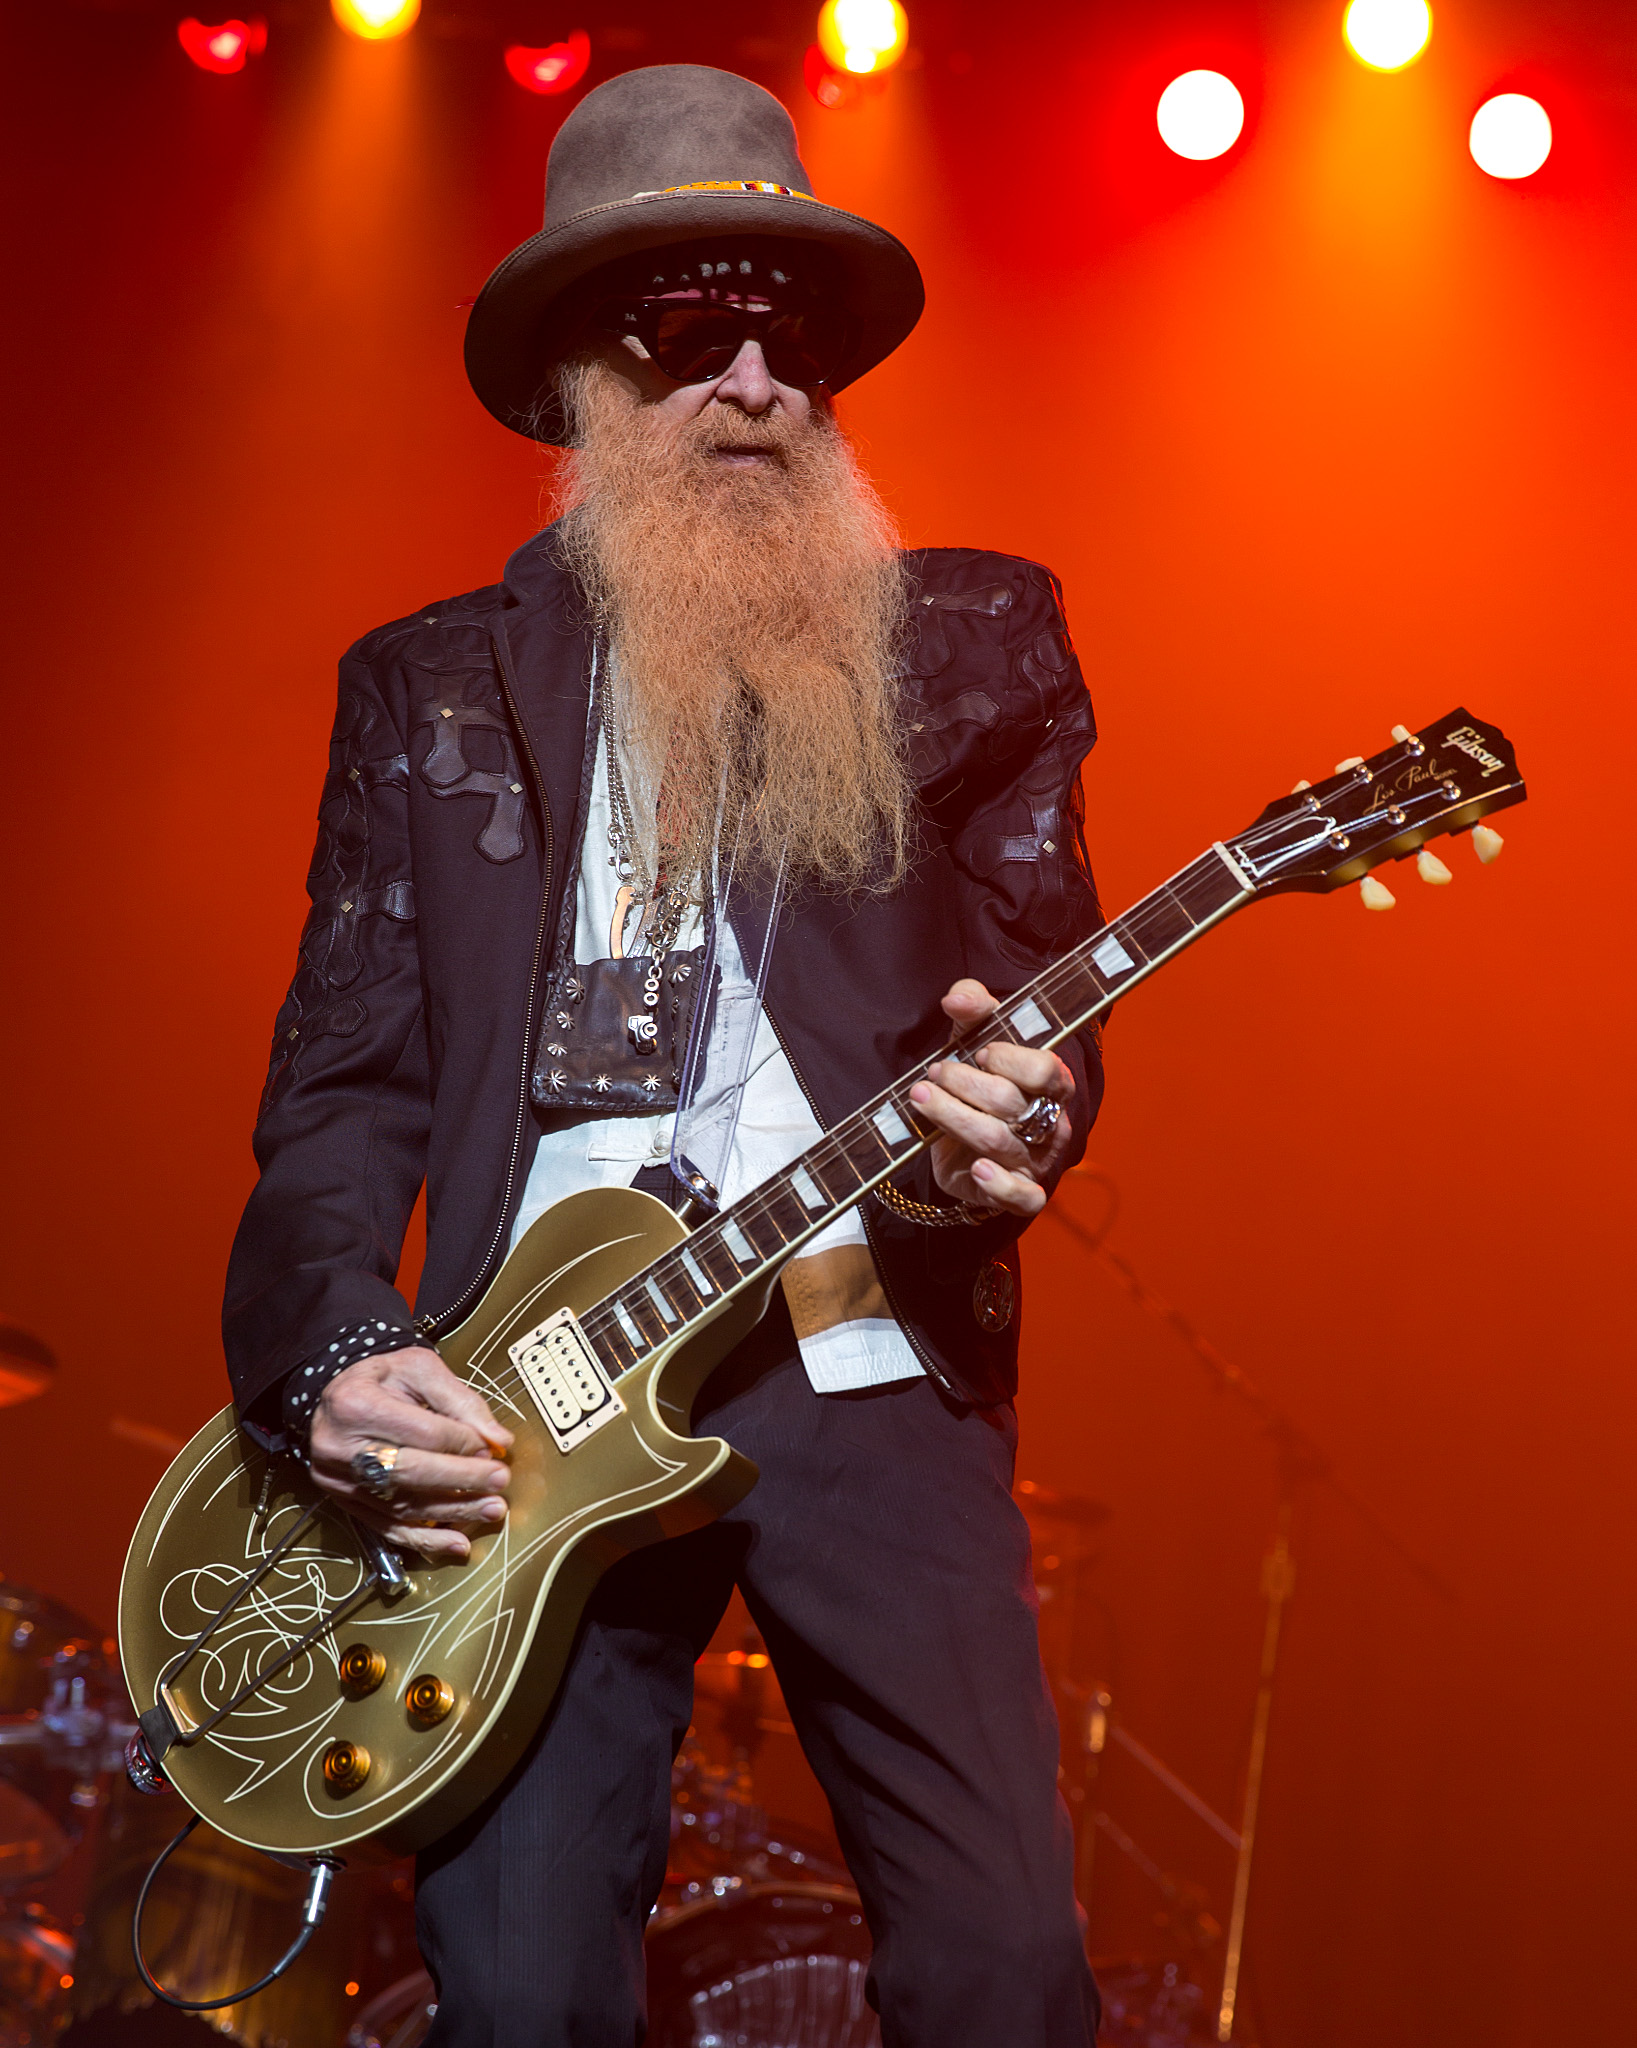 billy gibbons wikipediabilly gibbons guitars, billy gibbons hat, billy gibbons and the bfg's perfectamundo, billy gibbons 2017, billy gibbons equipment, billy gibbons la grange, billy gibbons height, billy gibbons wikipedia, billy gibbons zz top, billy gibbons rig, billy gibbons harmonics, billy gibbons jewelry, billy gibbons amps, billy gibbons guitar for sale, billy gibbons vocal range, billy gibbons shaved, billy gibbons pearly gates, billy gibbons rings, billy gibbons esquire, billy gibbons wiki